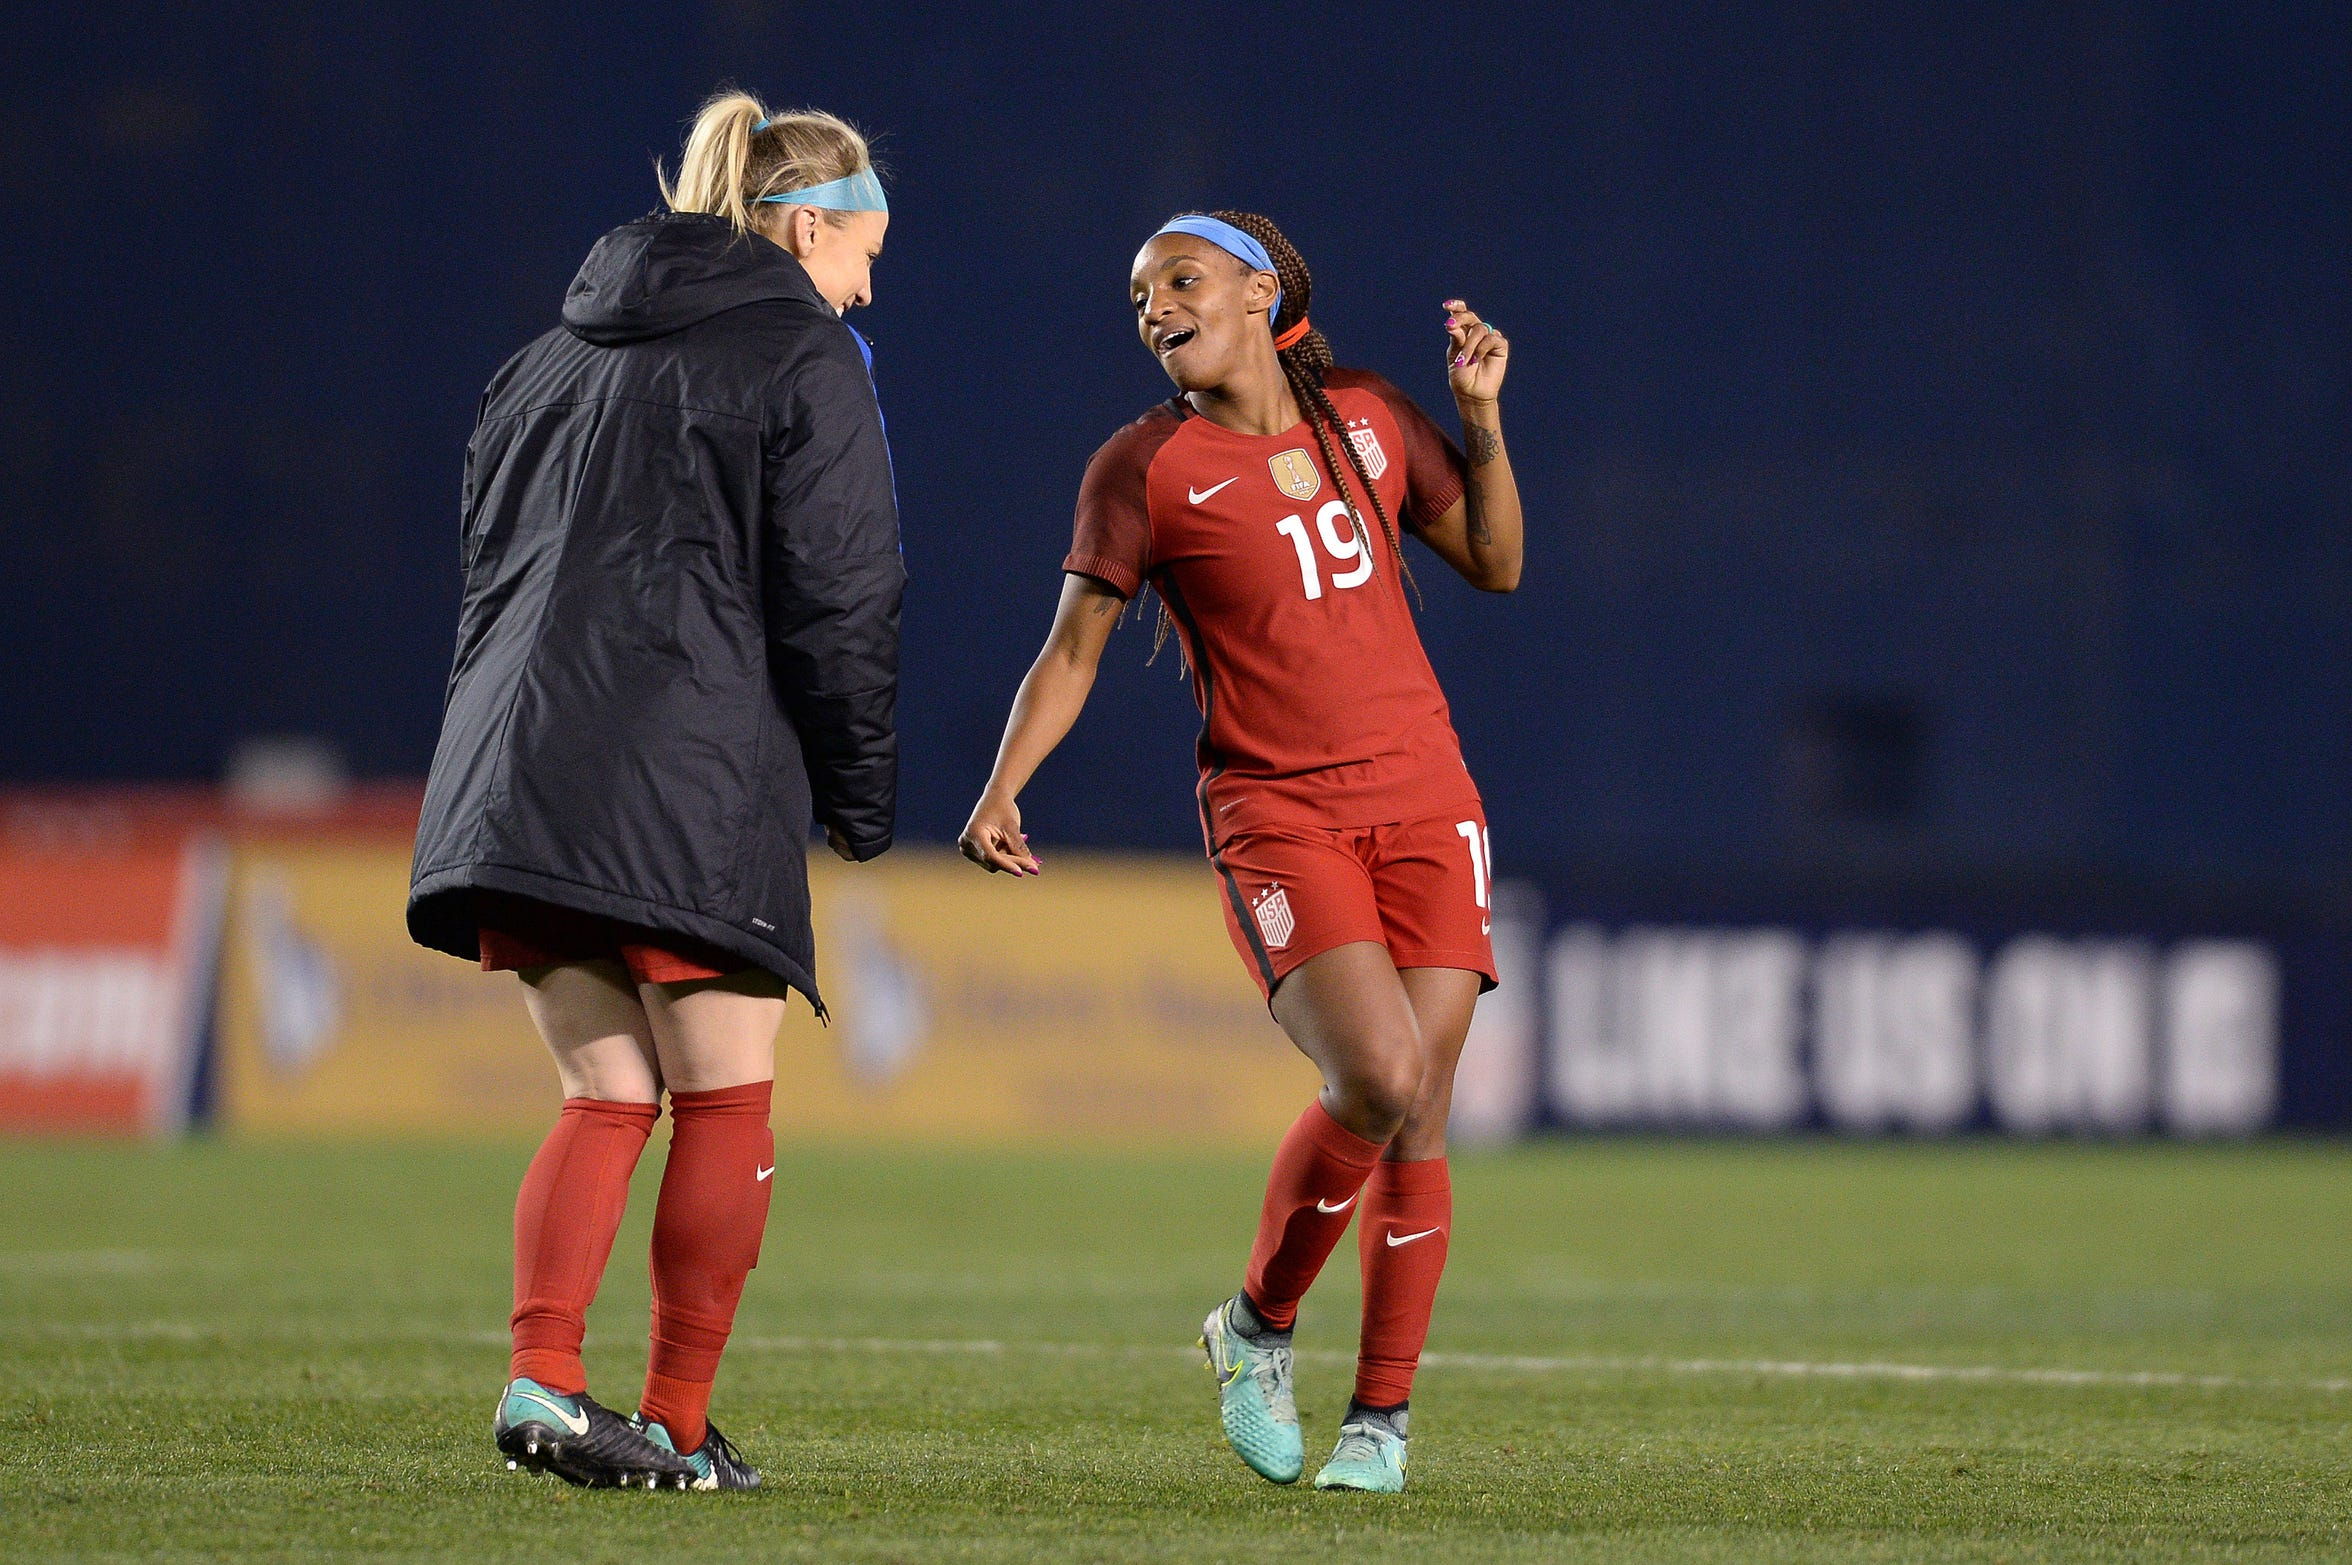 reputable site ea16d dc3bb Julie Ertz gears up to lead United States women's national ...